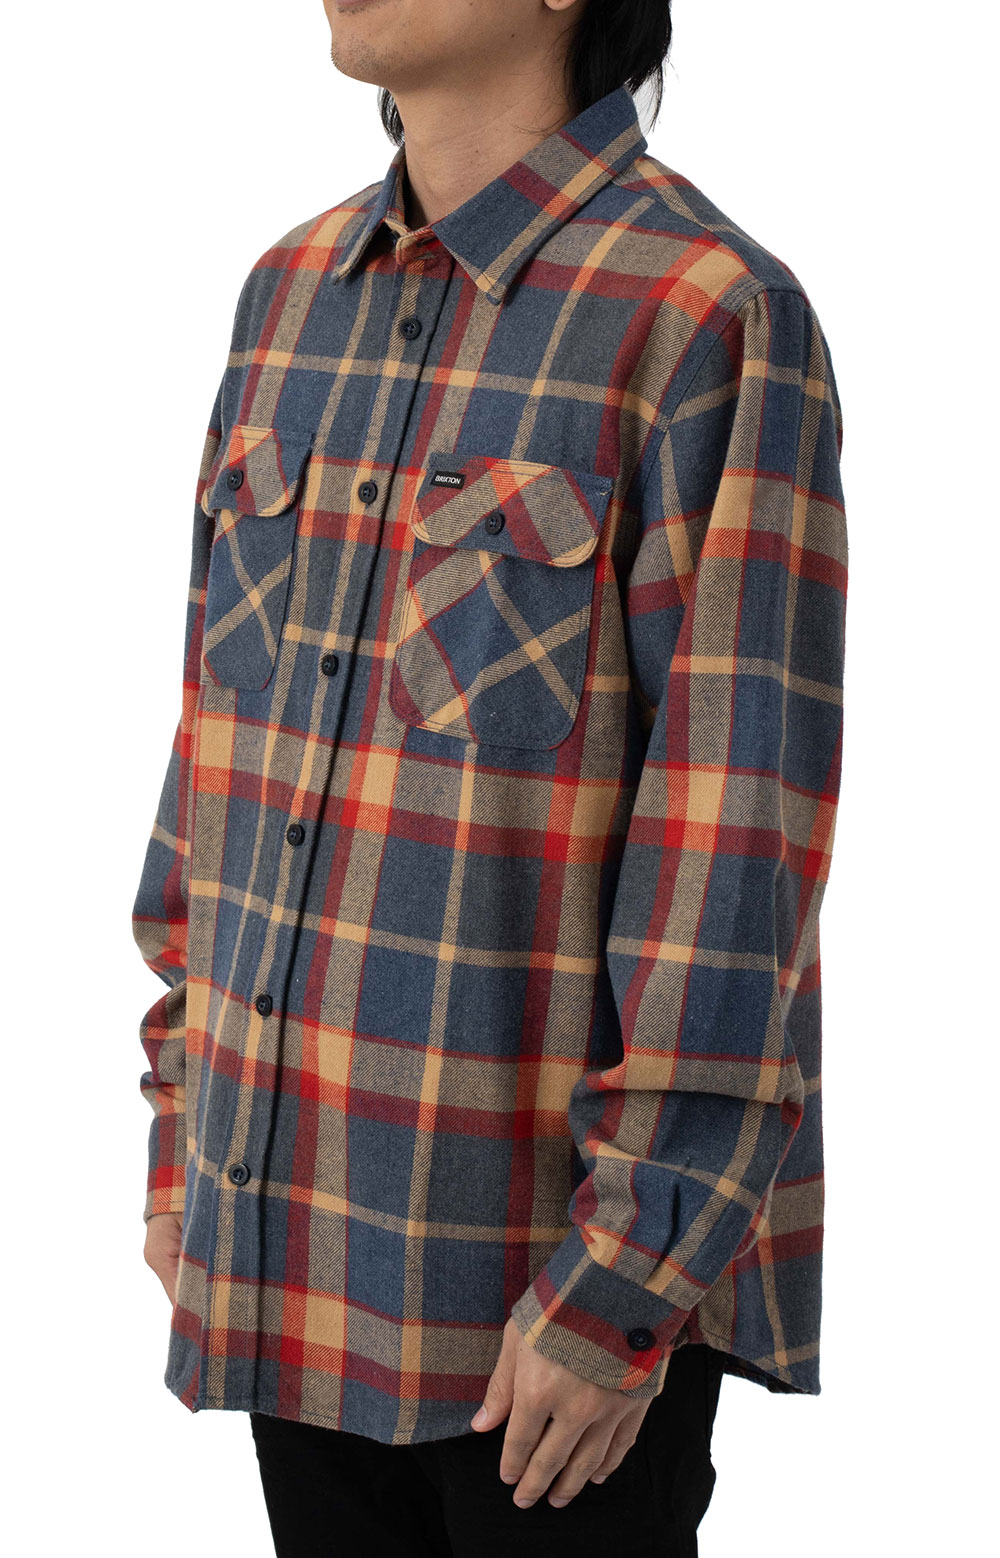 Bowery L/S Flannel - Blue/Red 2